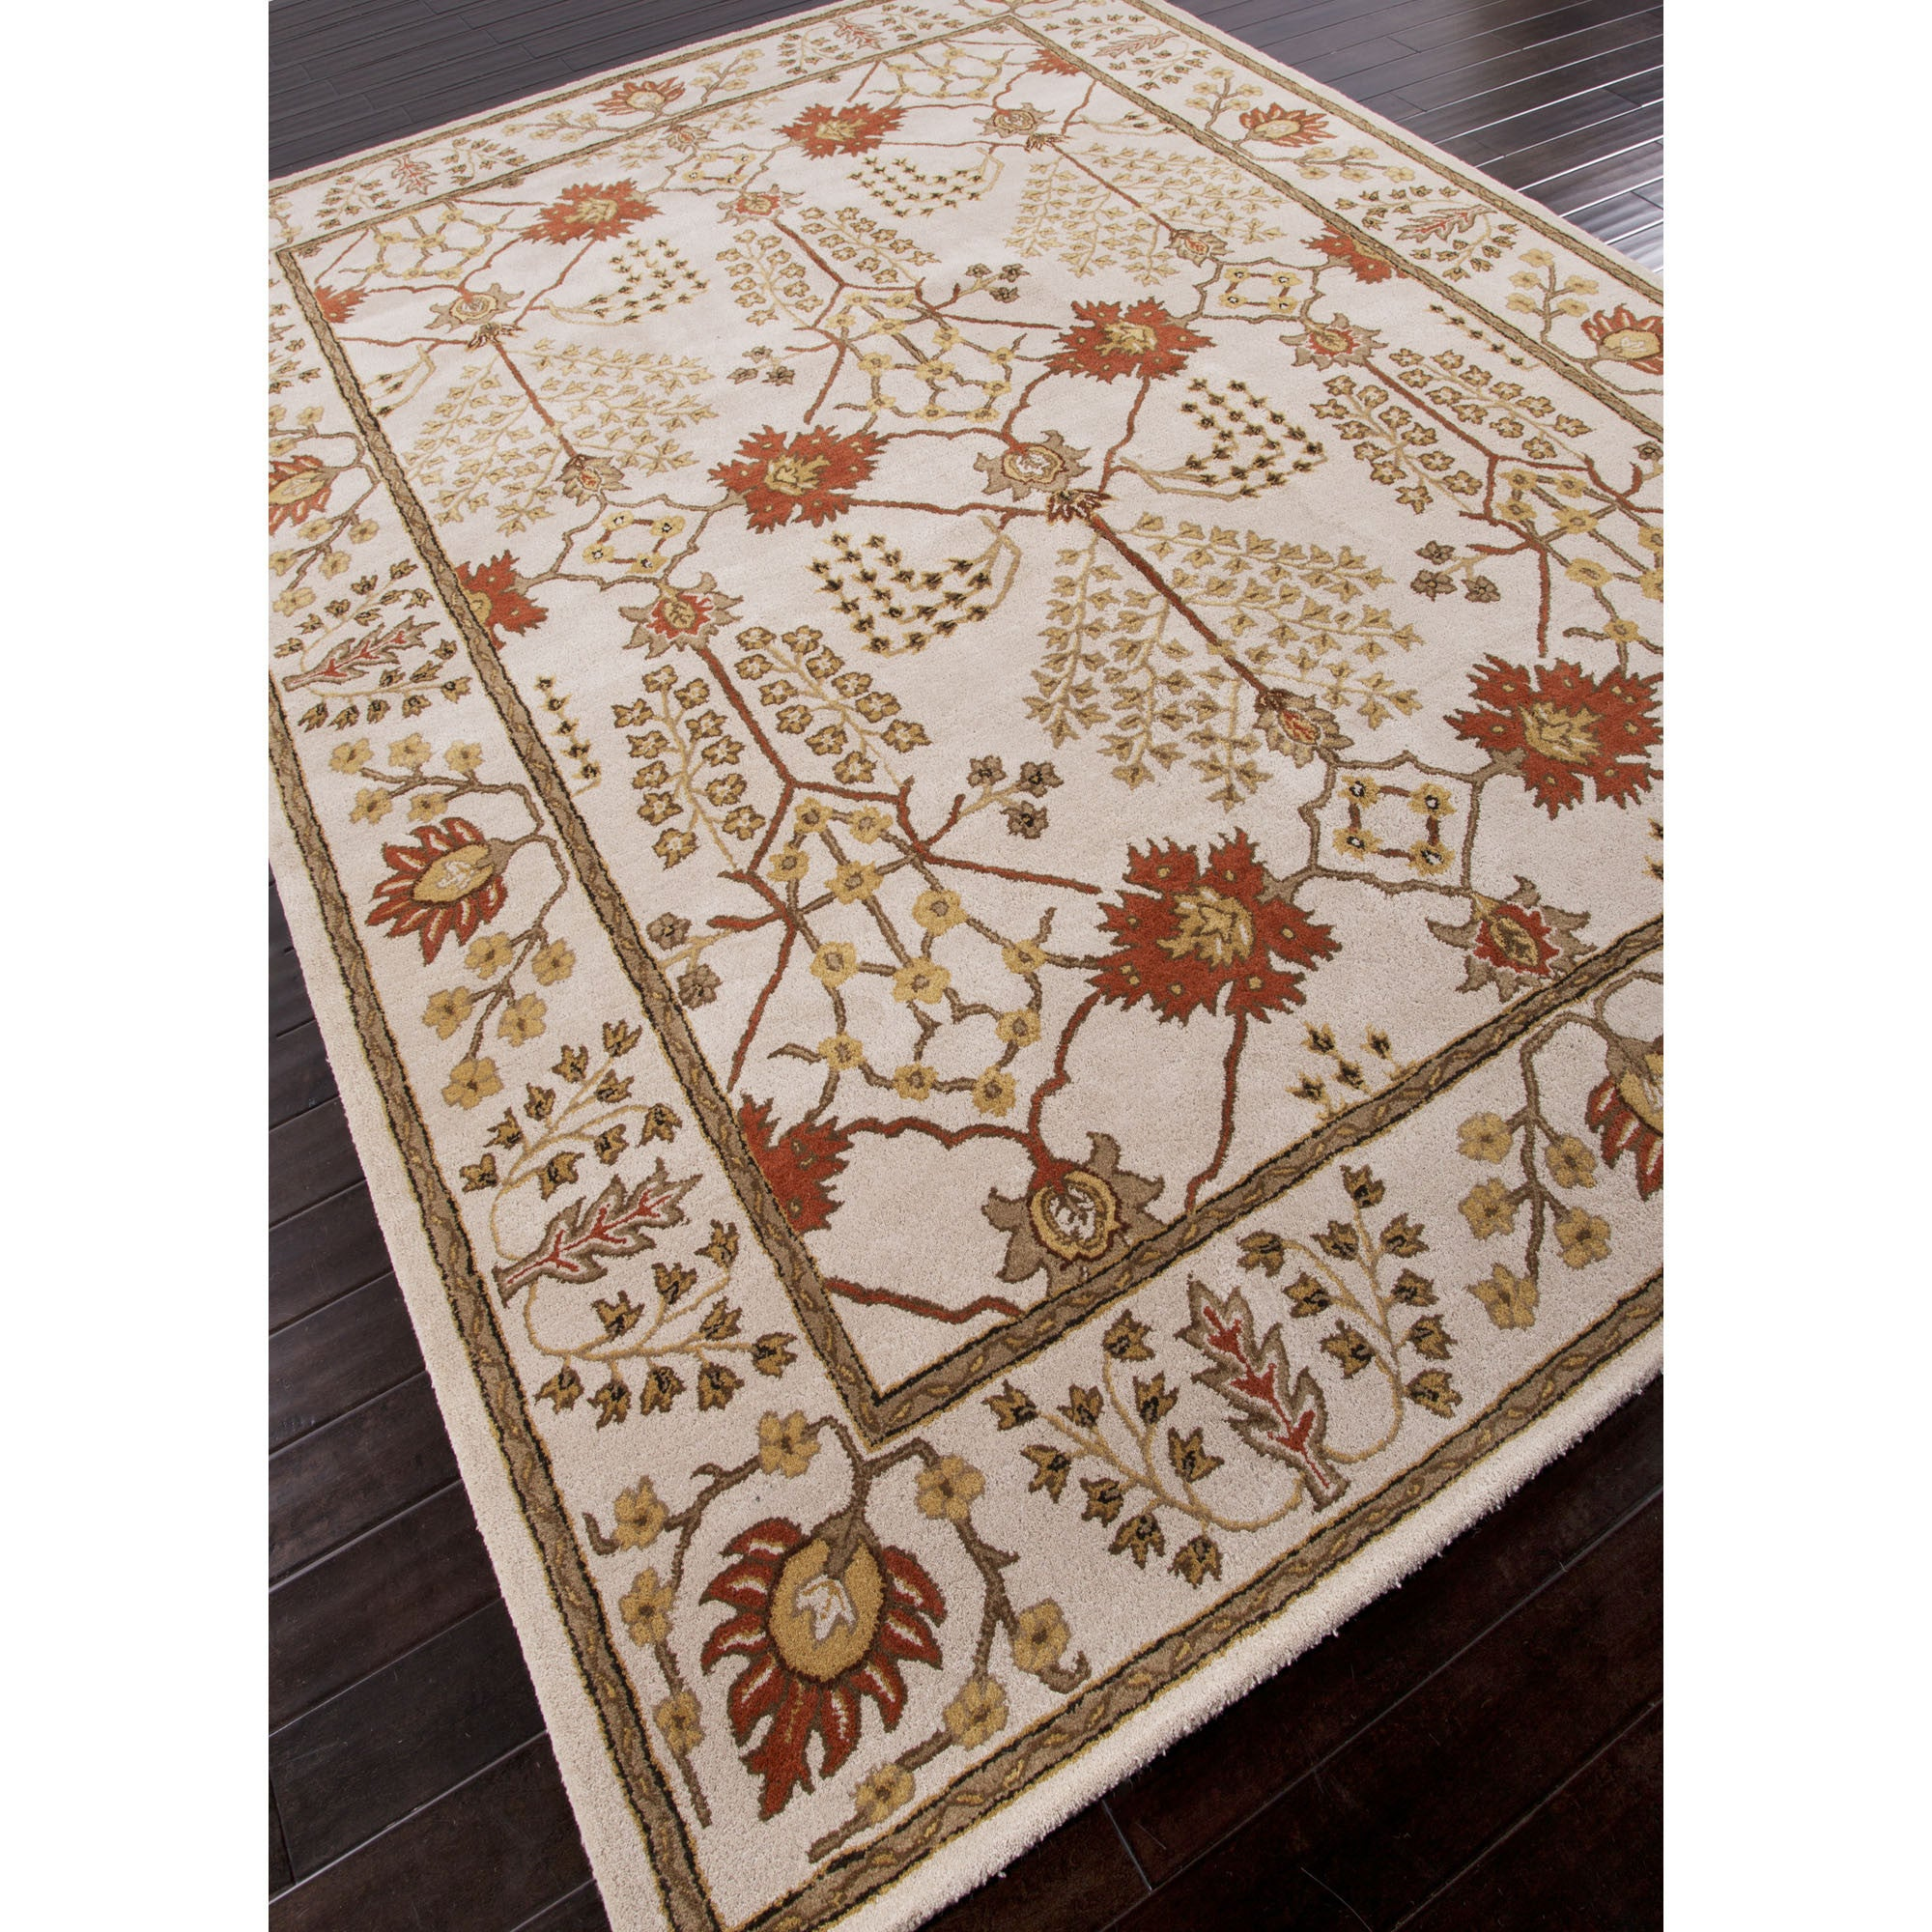 jaipur rugs classic arts and crafts pattern ivoryred wool area rug pm72 rectangle